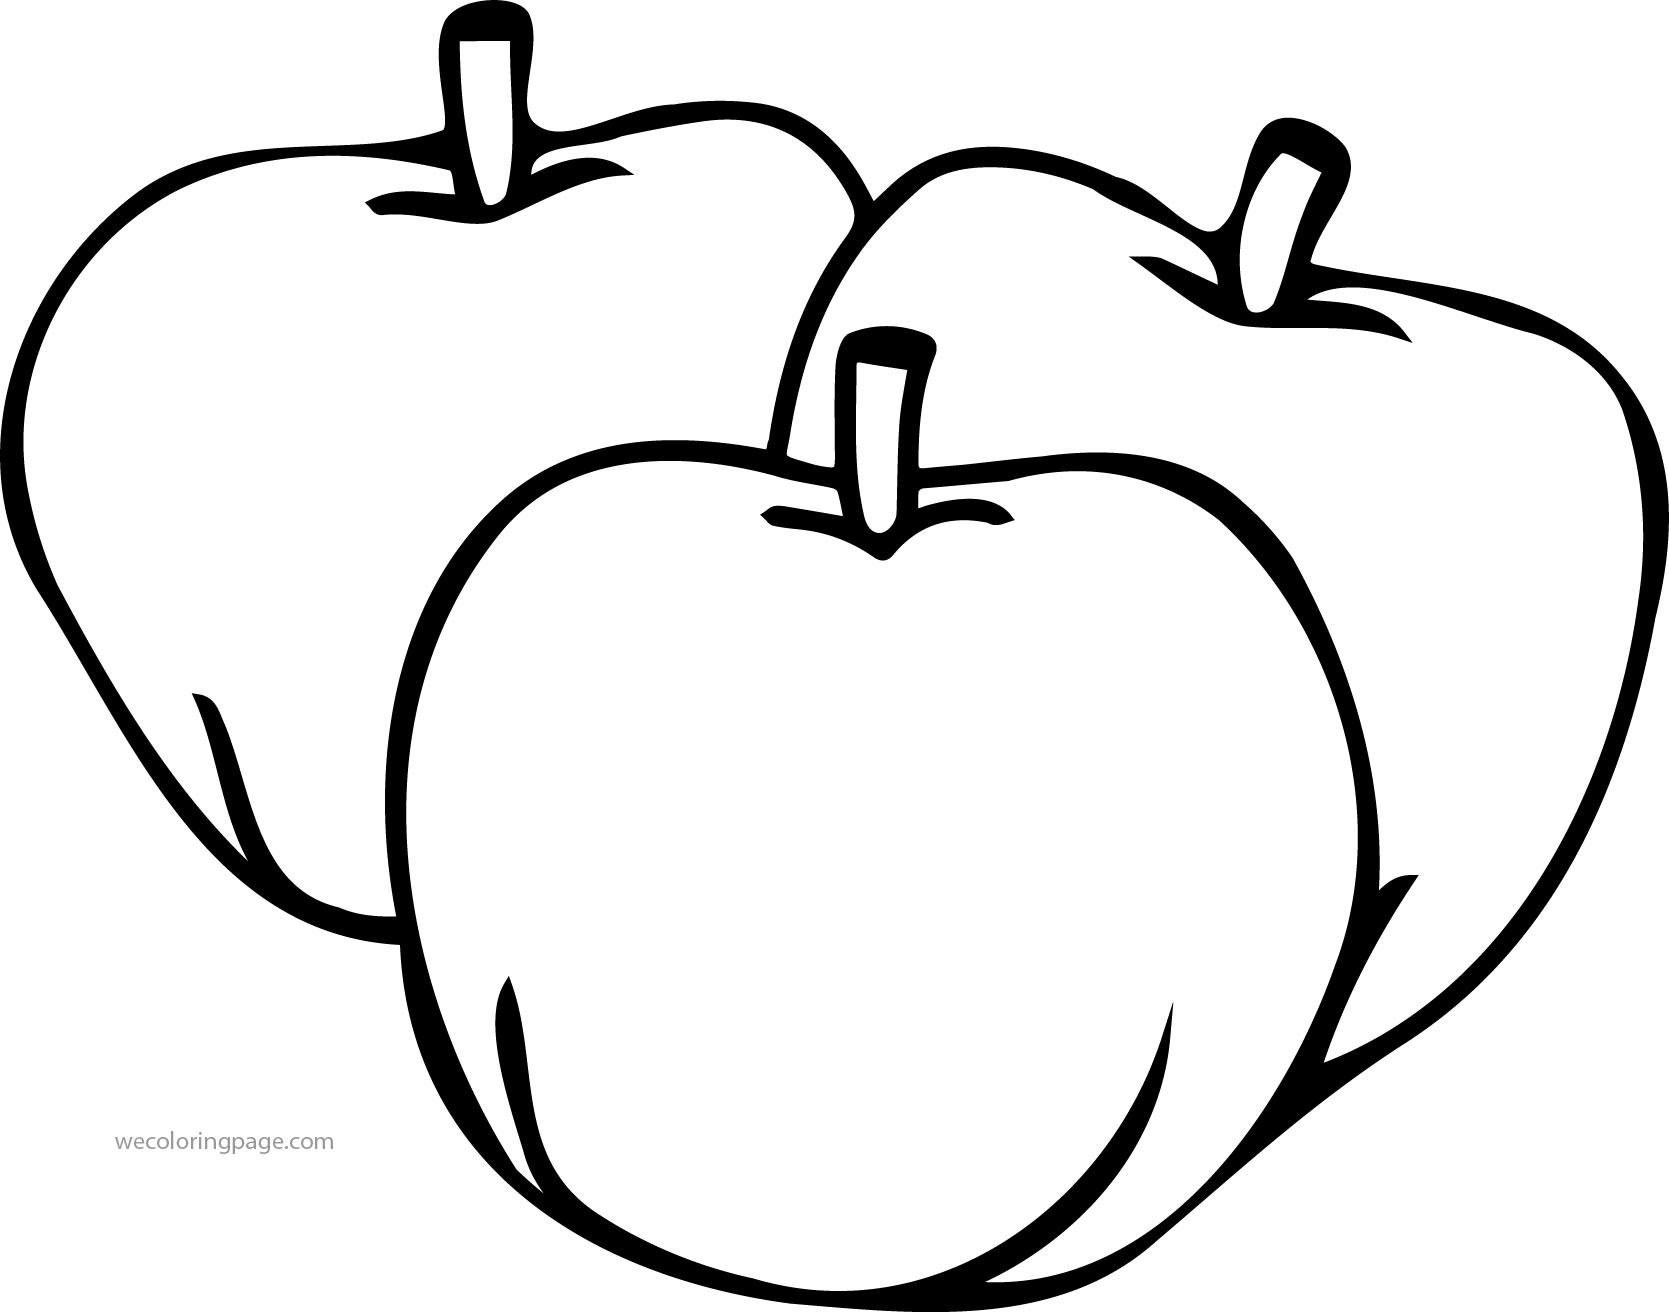 apple coloring for kids ten apples coloring sheet coloringrocks coloring for kids apple